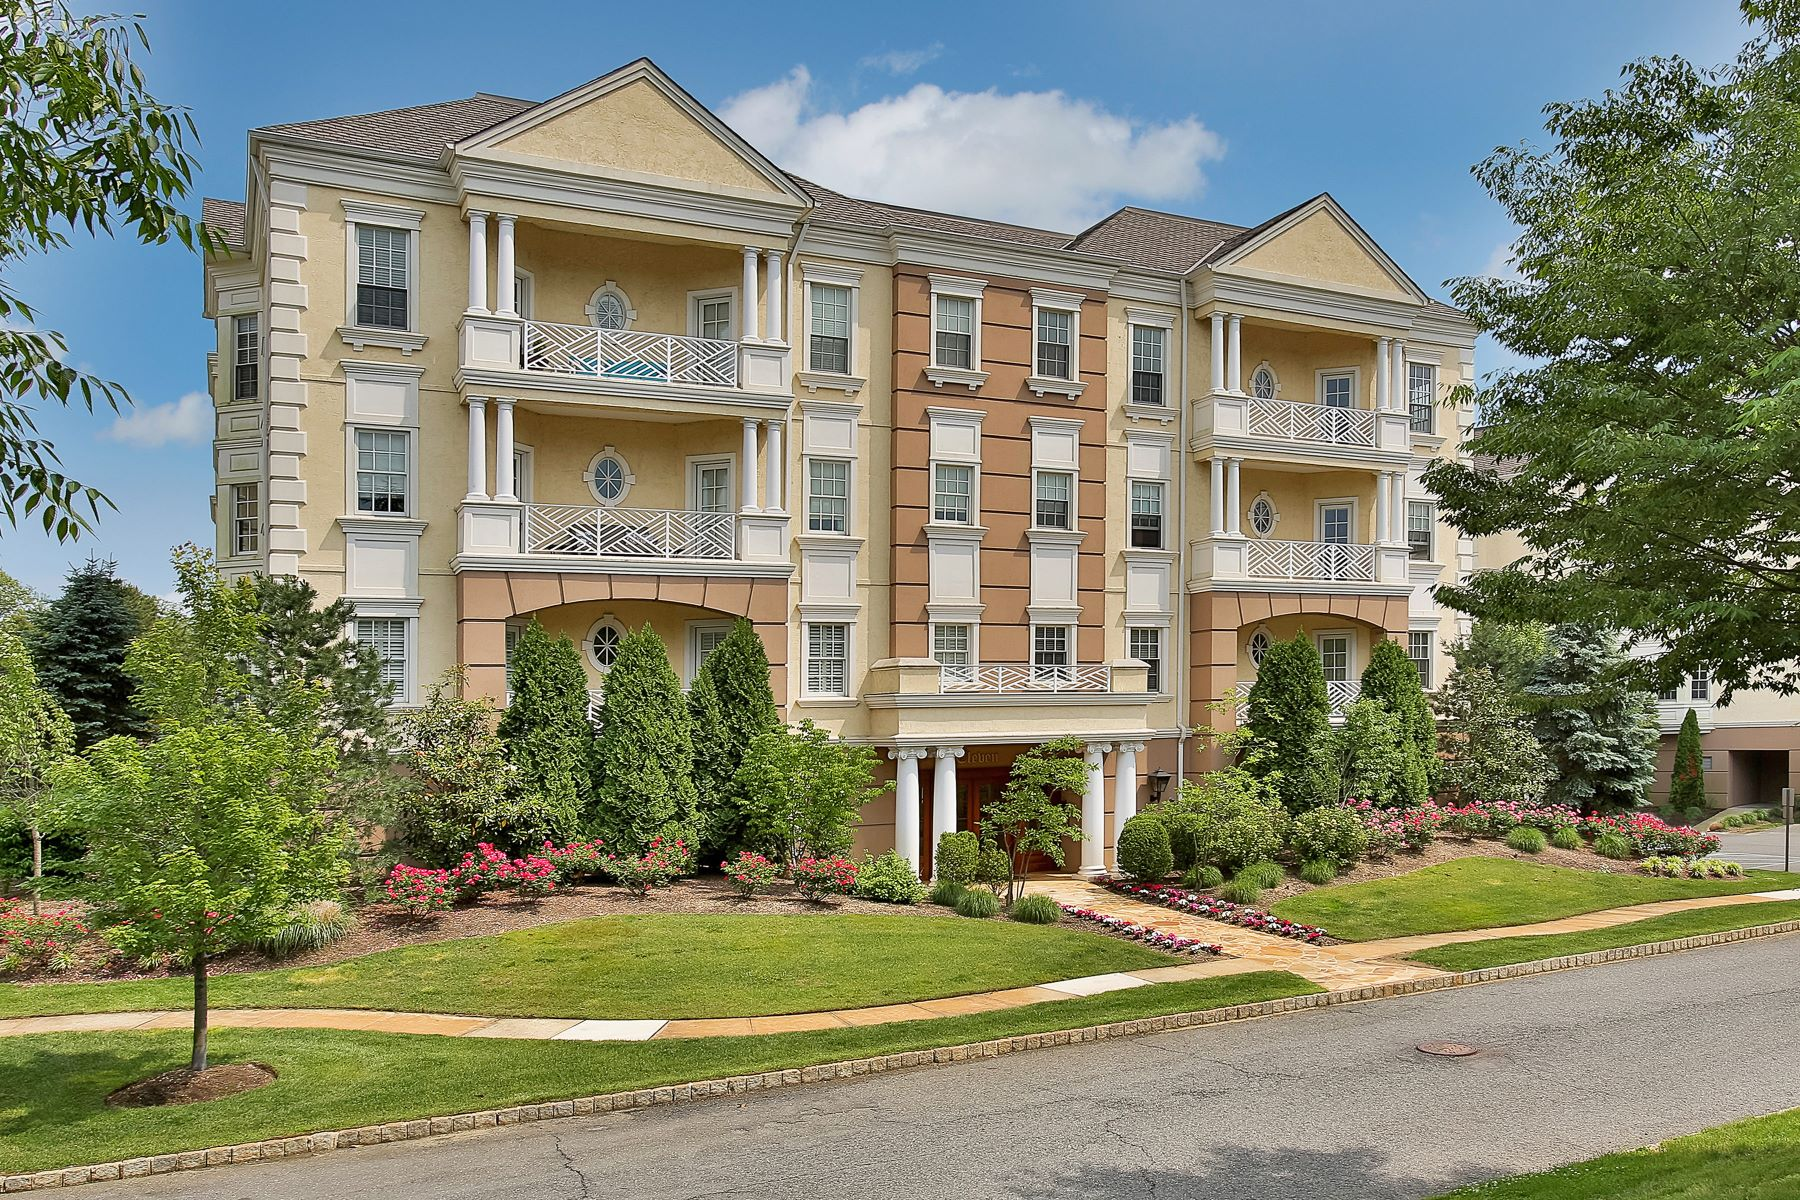 Condominio por un Venta en Elegant Lifestle at the Monmouth 1031 Oval Rd, Wall, Nueva Jersey 08736 Estados Unidos